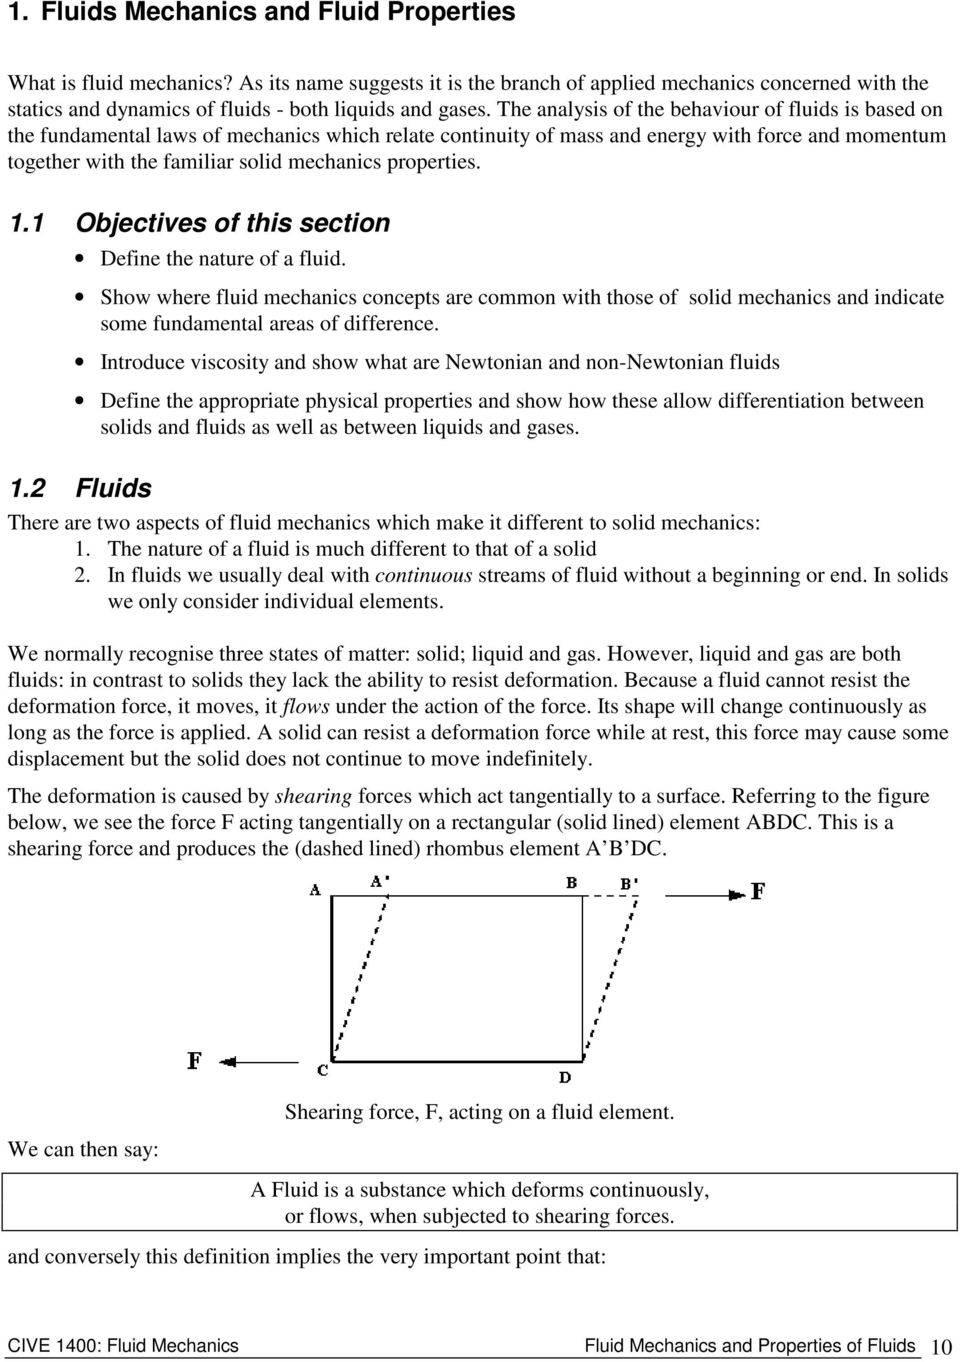 properties. 1.1 Objectives of this section Define the nature of a fluid. Show where fluid mechanics concepts are common with those of solid mechanics and indicate some fundamental areas of difference.